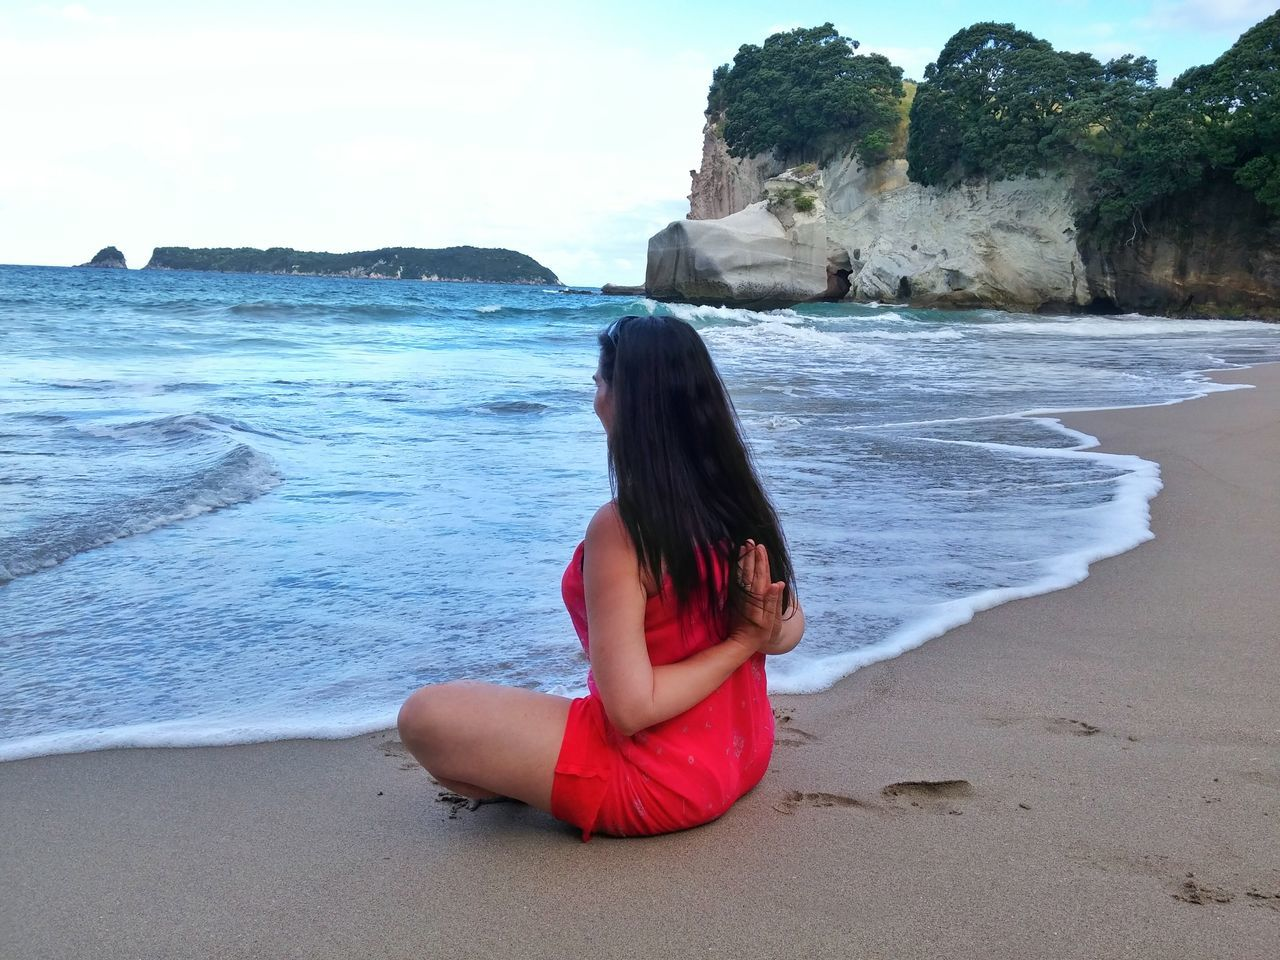 https://youtu.be/noRkC23V4g4 What lies behind us and what lies before us are tiny matters, compared to what lies within us. Alternative Fitness Engage Your Senses Soul Nourishment A Moment Of Zen... Surf's Up Cathedral Cove New Zealand Namaste ❤ Reverse Selfie Let Your Hair Down Landscapes With WhiteWall Summer 2016 One Woman The KIOMI Collection Long Hair Dress Beach Photography Colour Image Horizon Over Water Flexibility Wellbeing Vacations Sitting Reverse Prayer Chronicles Of Narnia taken on my lgG3